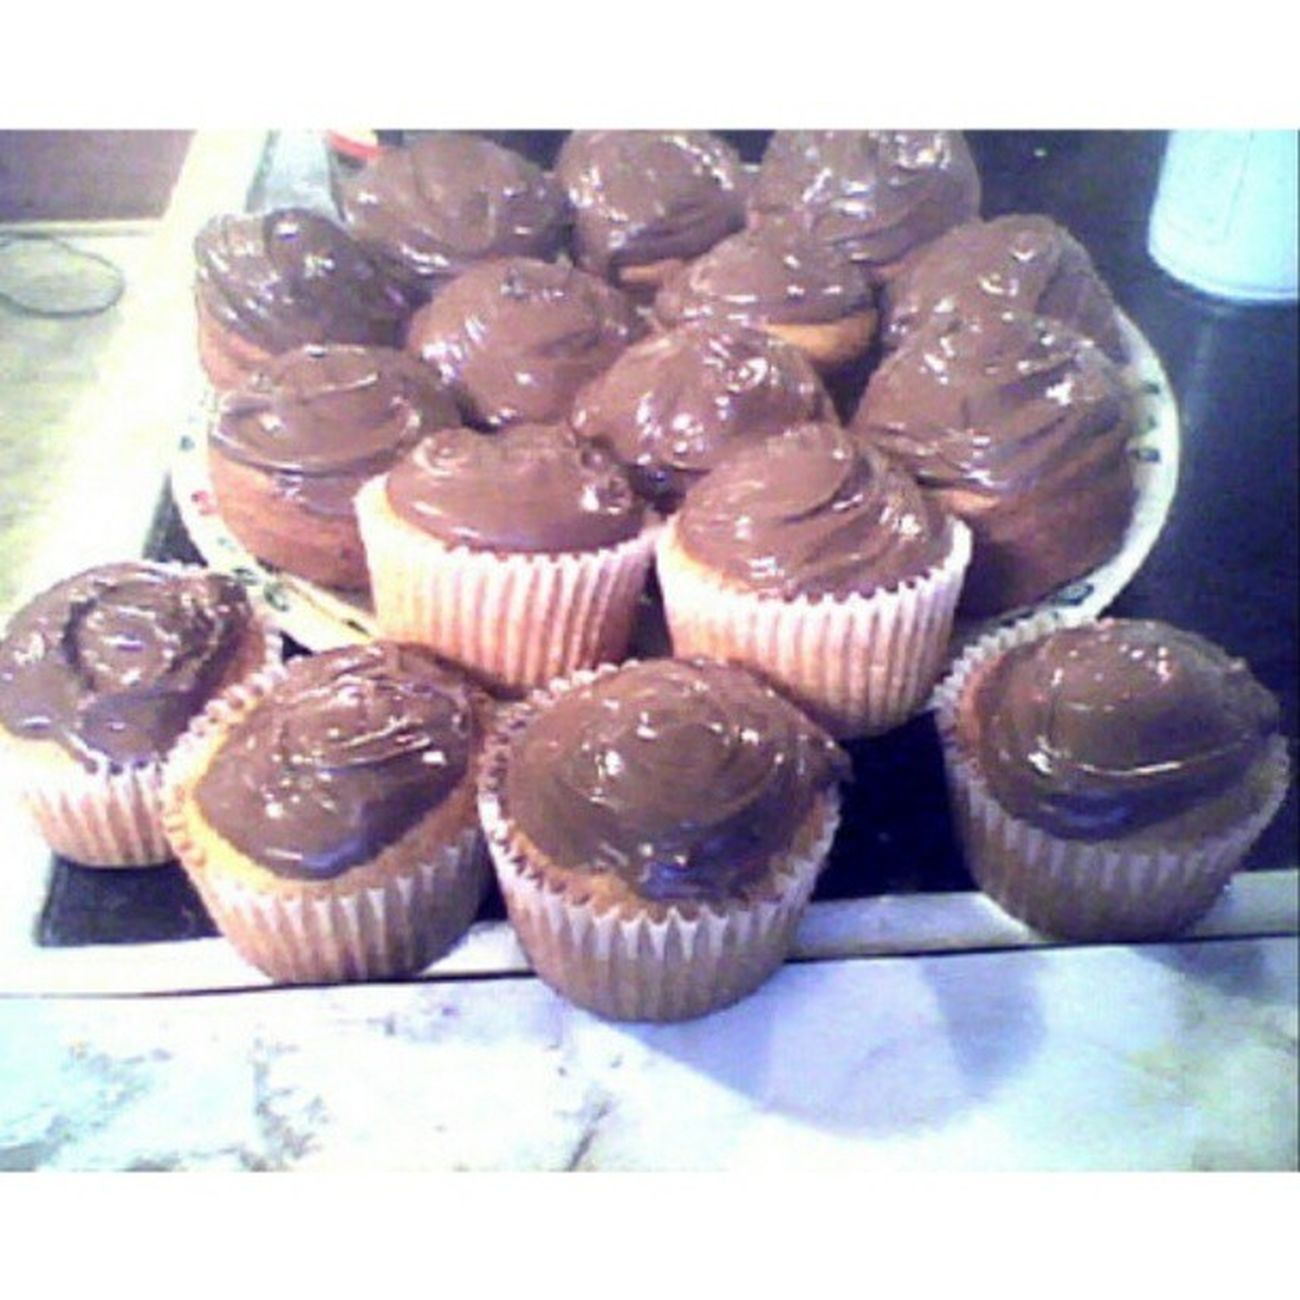 Chilling naked on my couch with my nutella cupcake. Whenimaloneathome